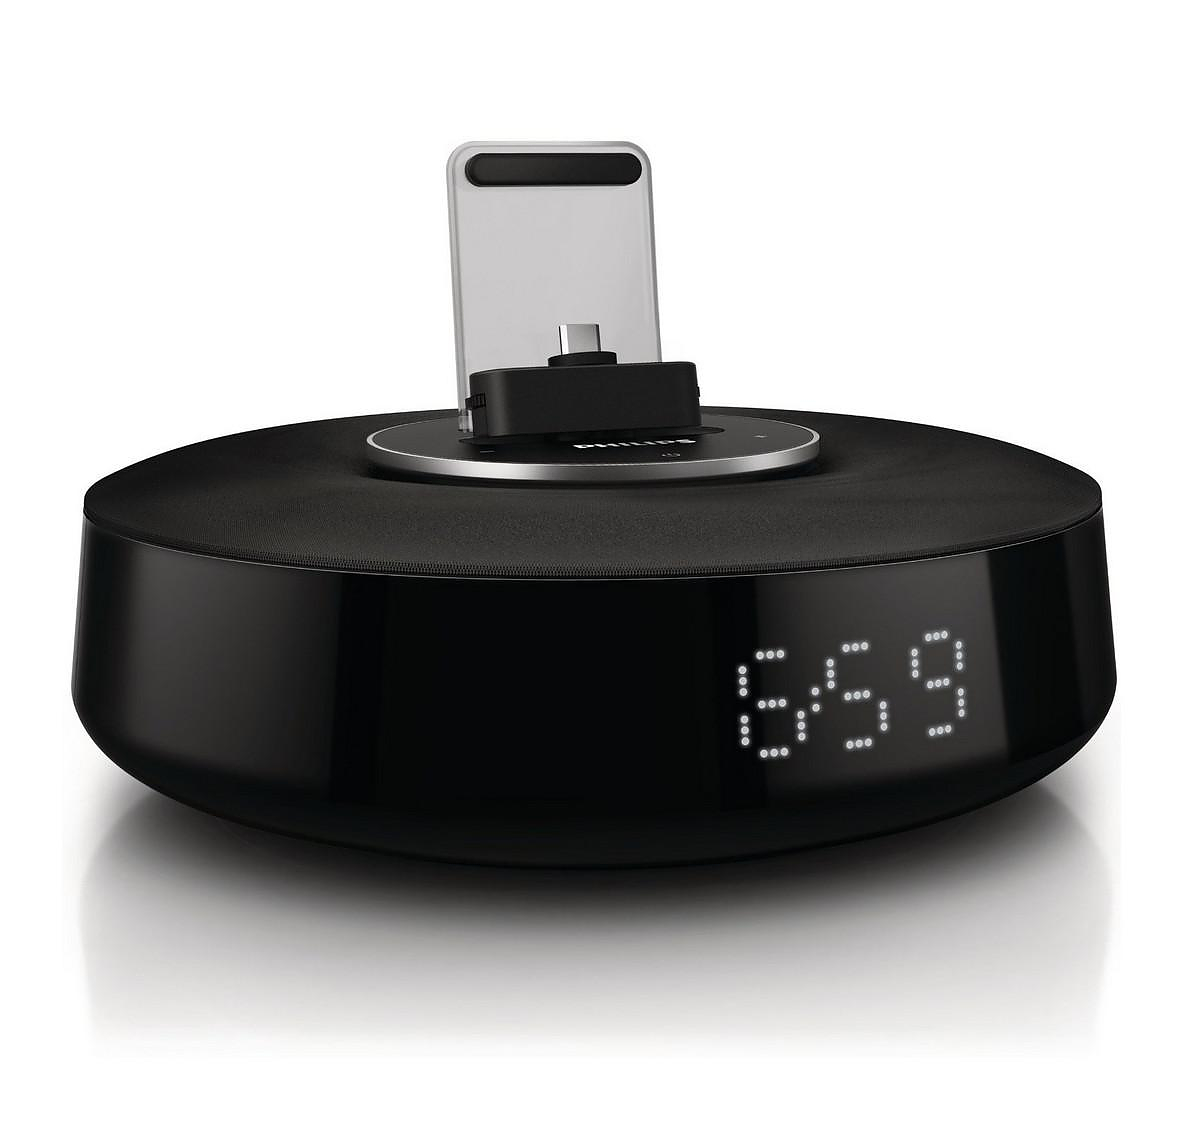 Philips FlexiDock Universal Android Docking Speaker.